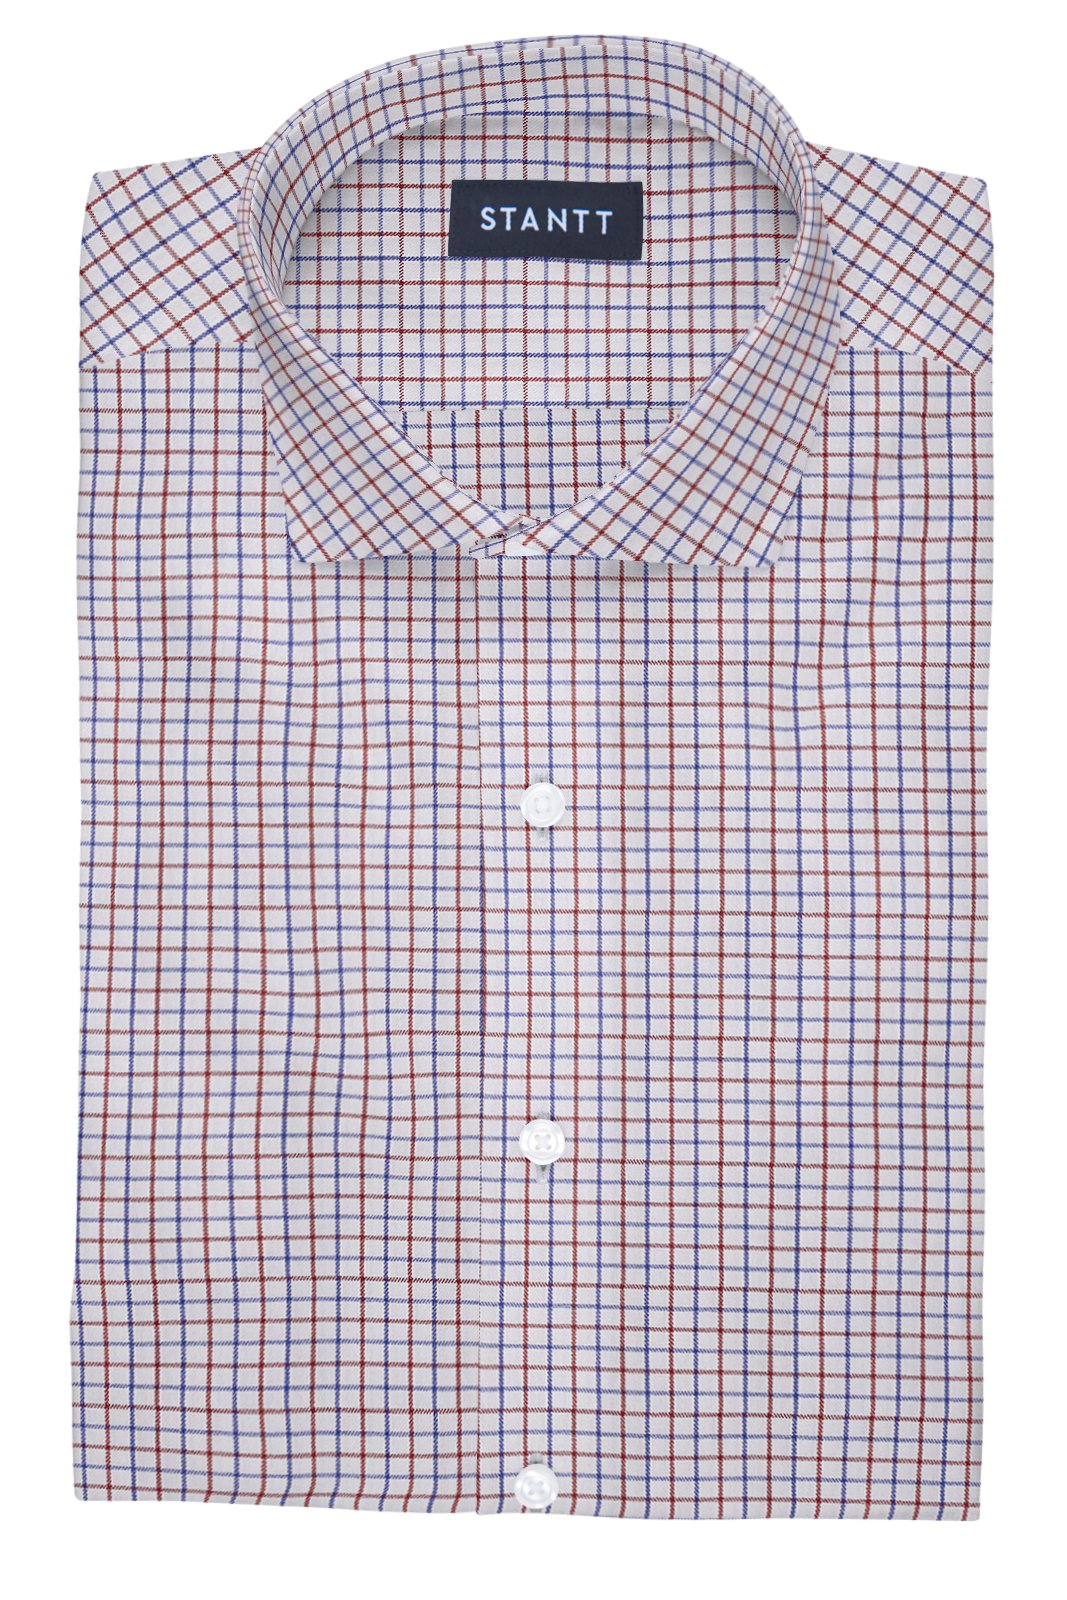 Performance Red and Blue Grid Check: Cutaway Collar, Barrel Cuff